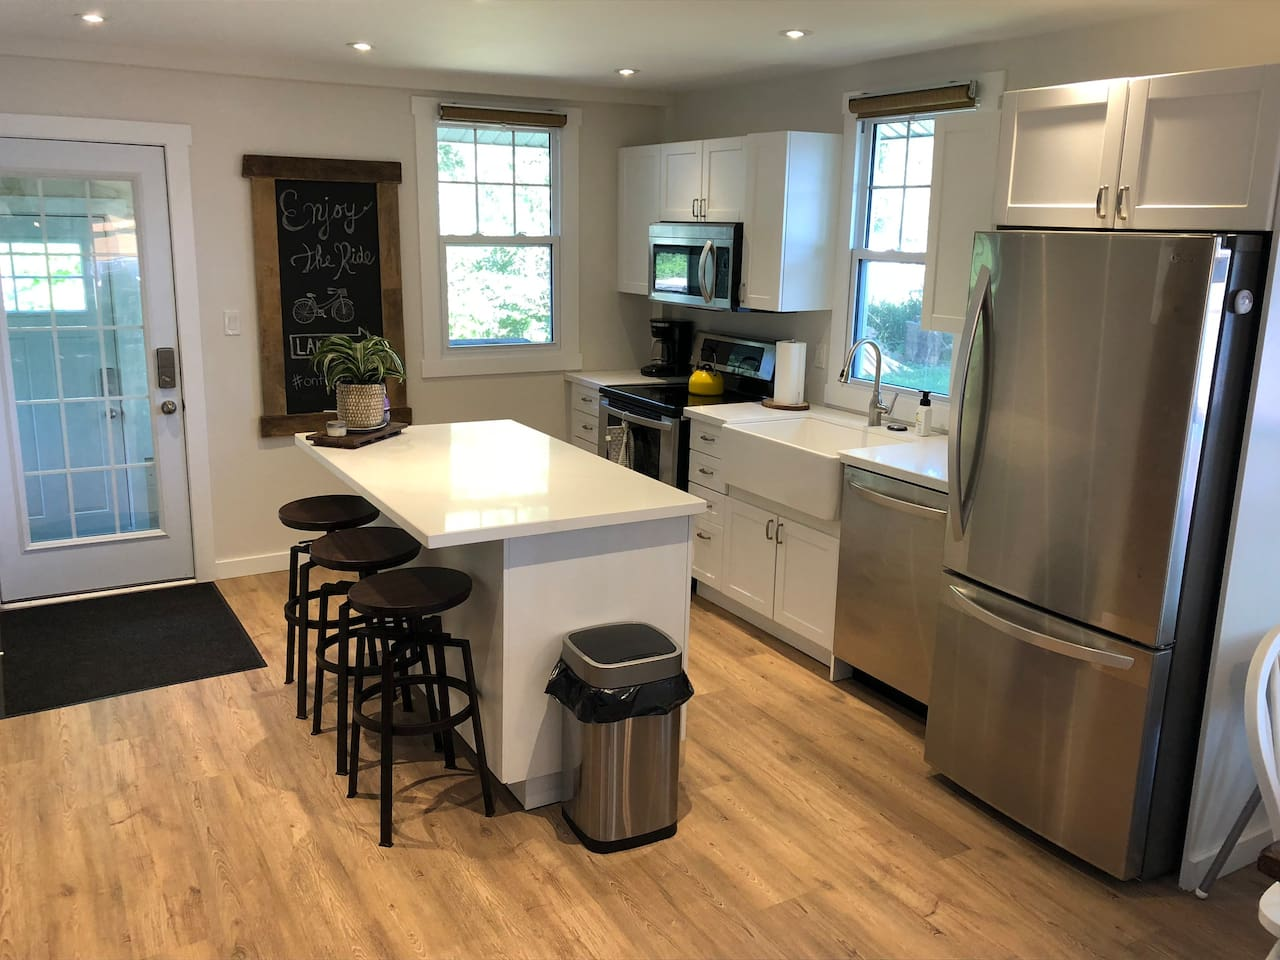 Modern kitchen with stainless appliances....and dishwasher!